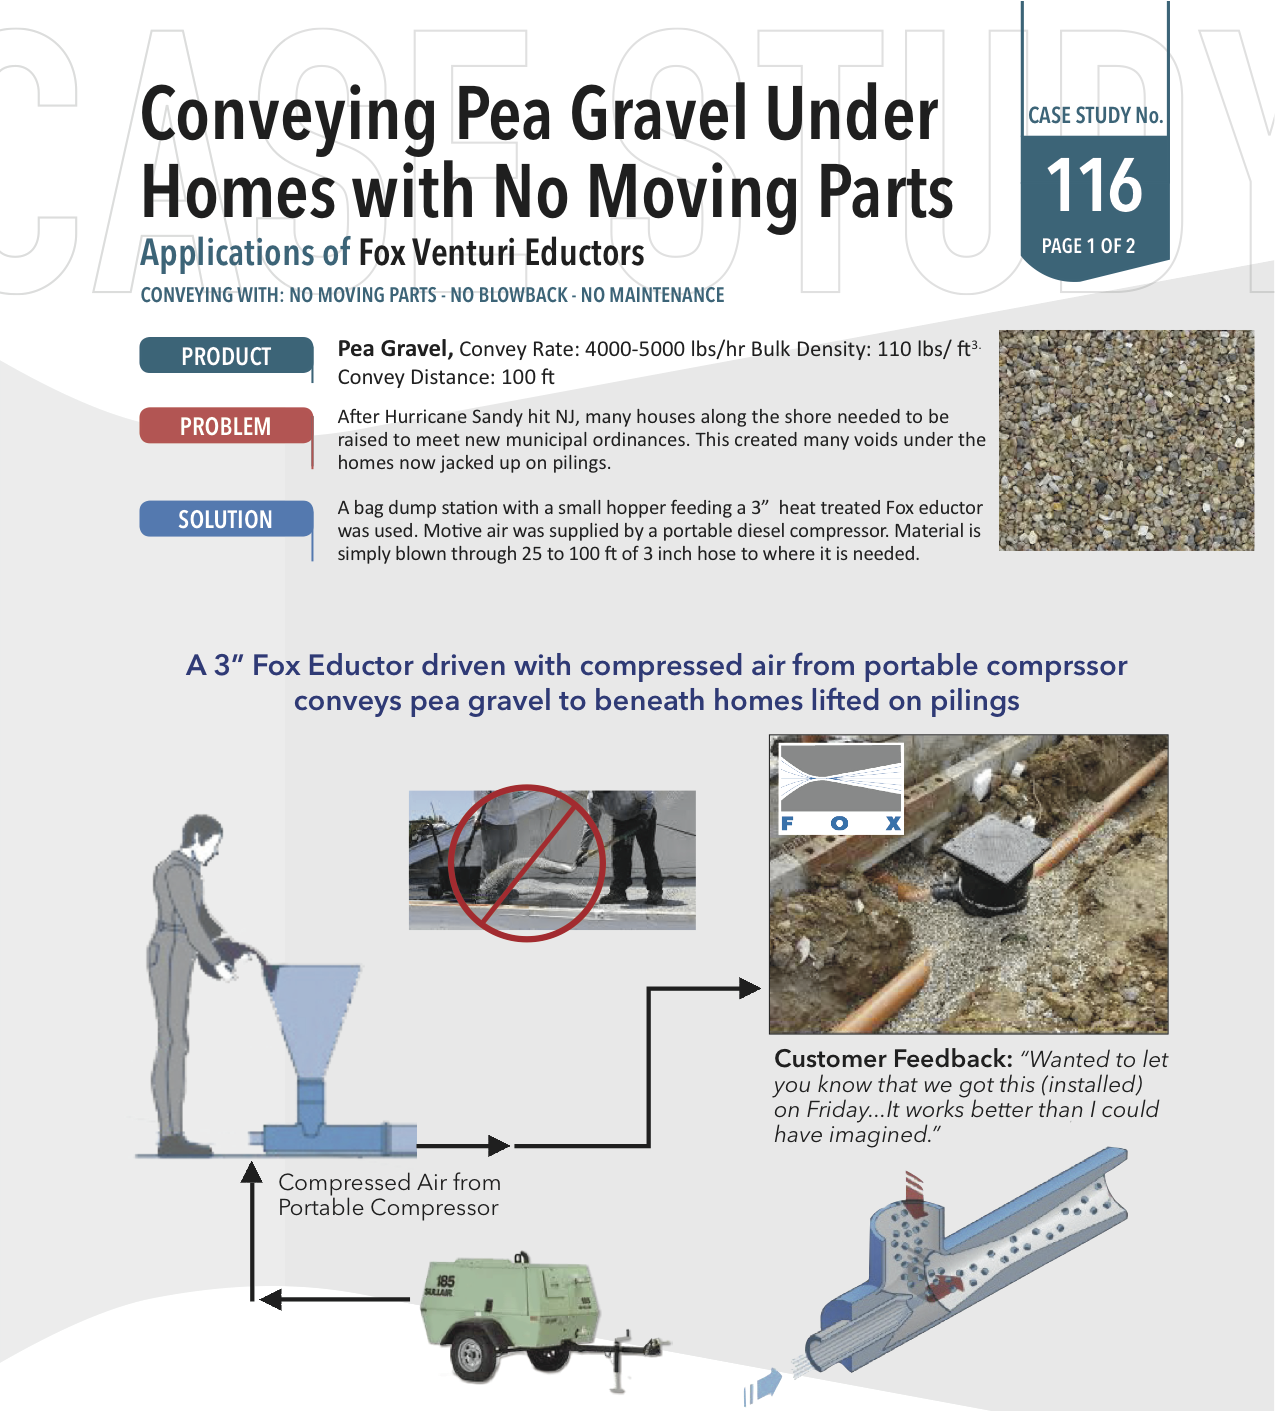 Conveying pea gravel under homes with no moving parts - Applications of Fox Venturi Eductors